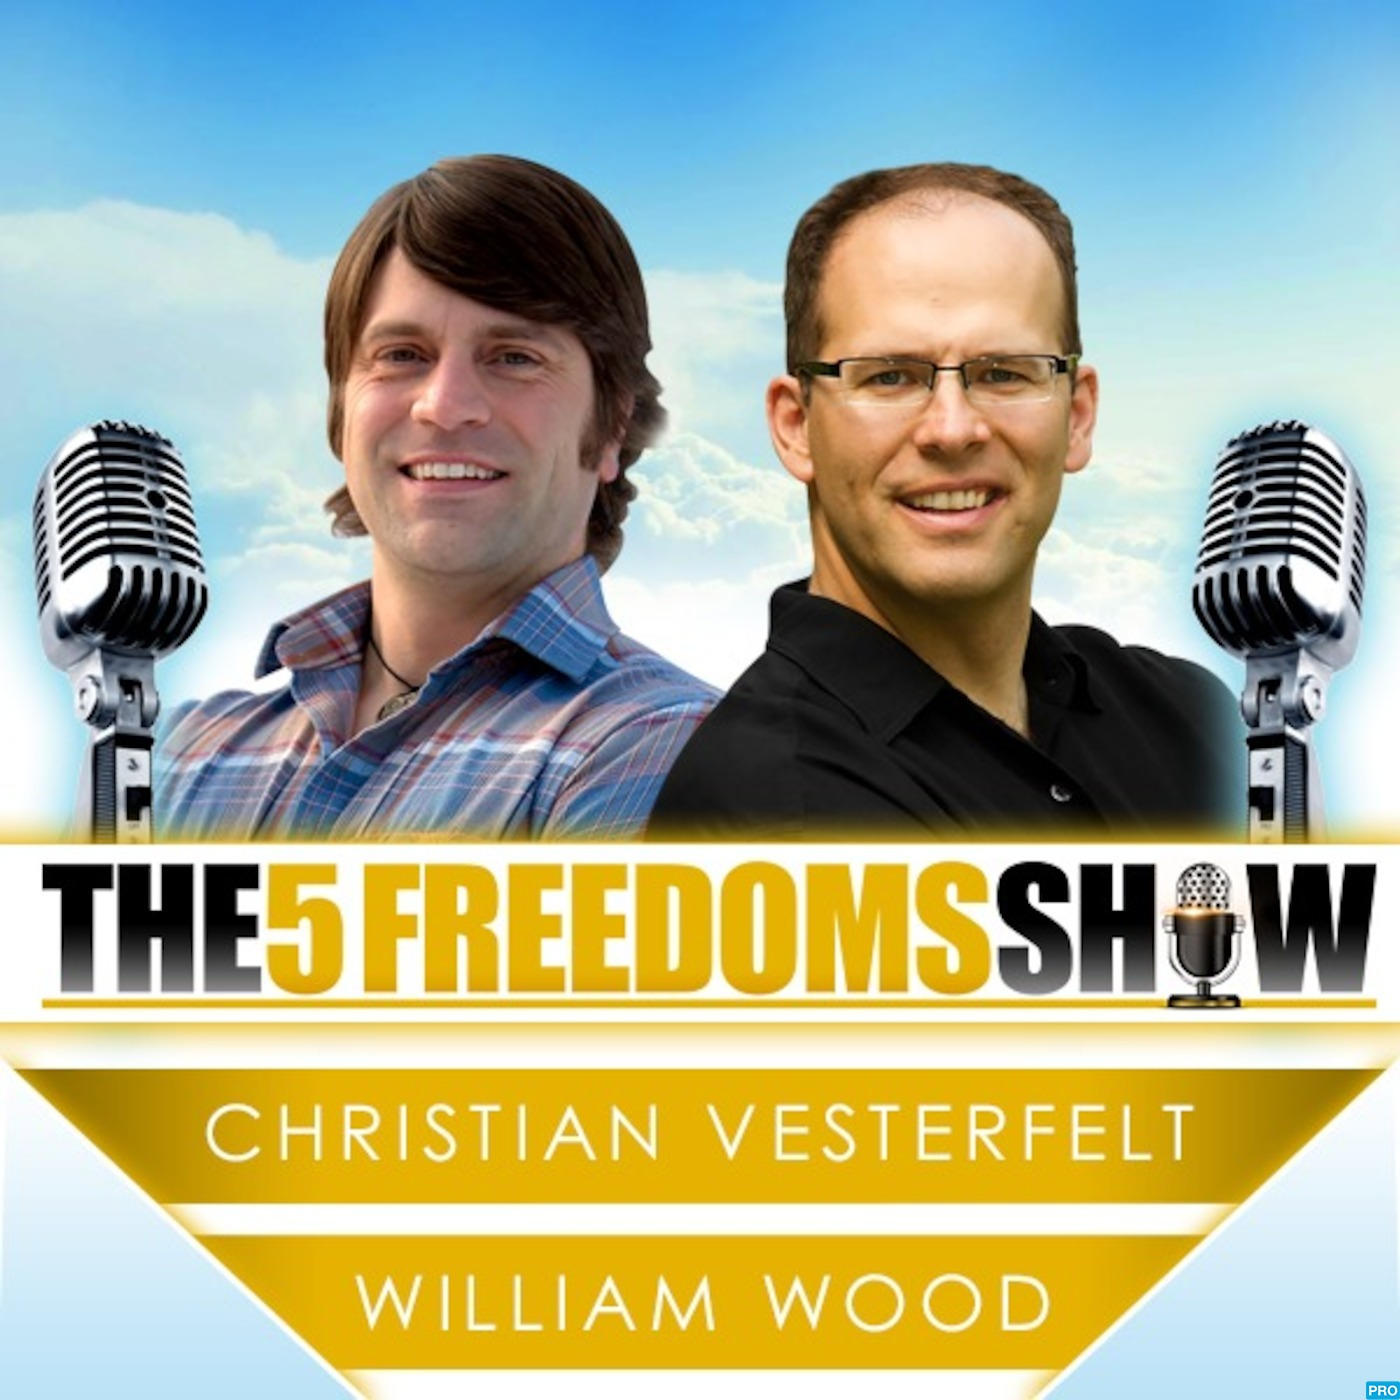 The Five Freedoms Show